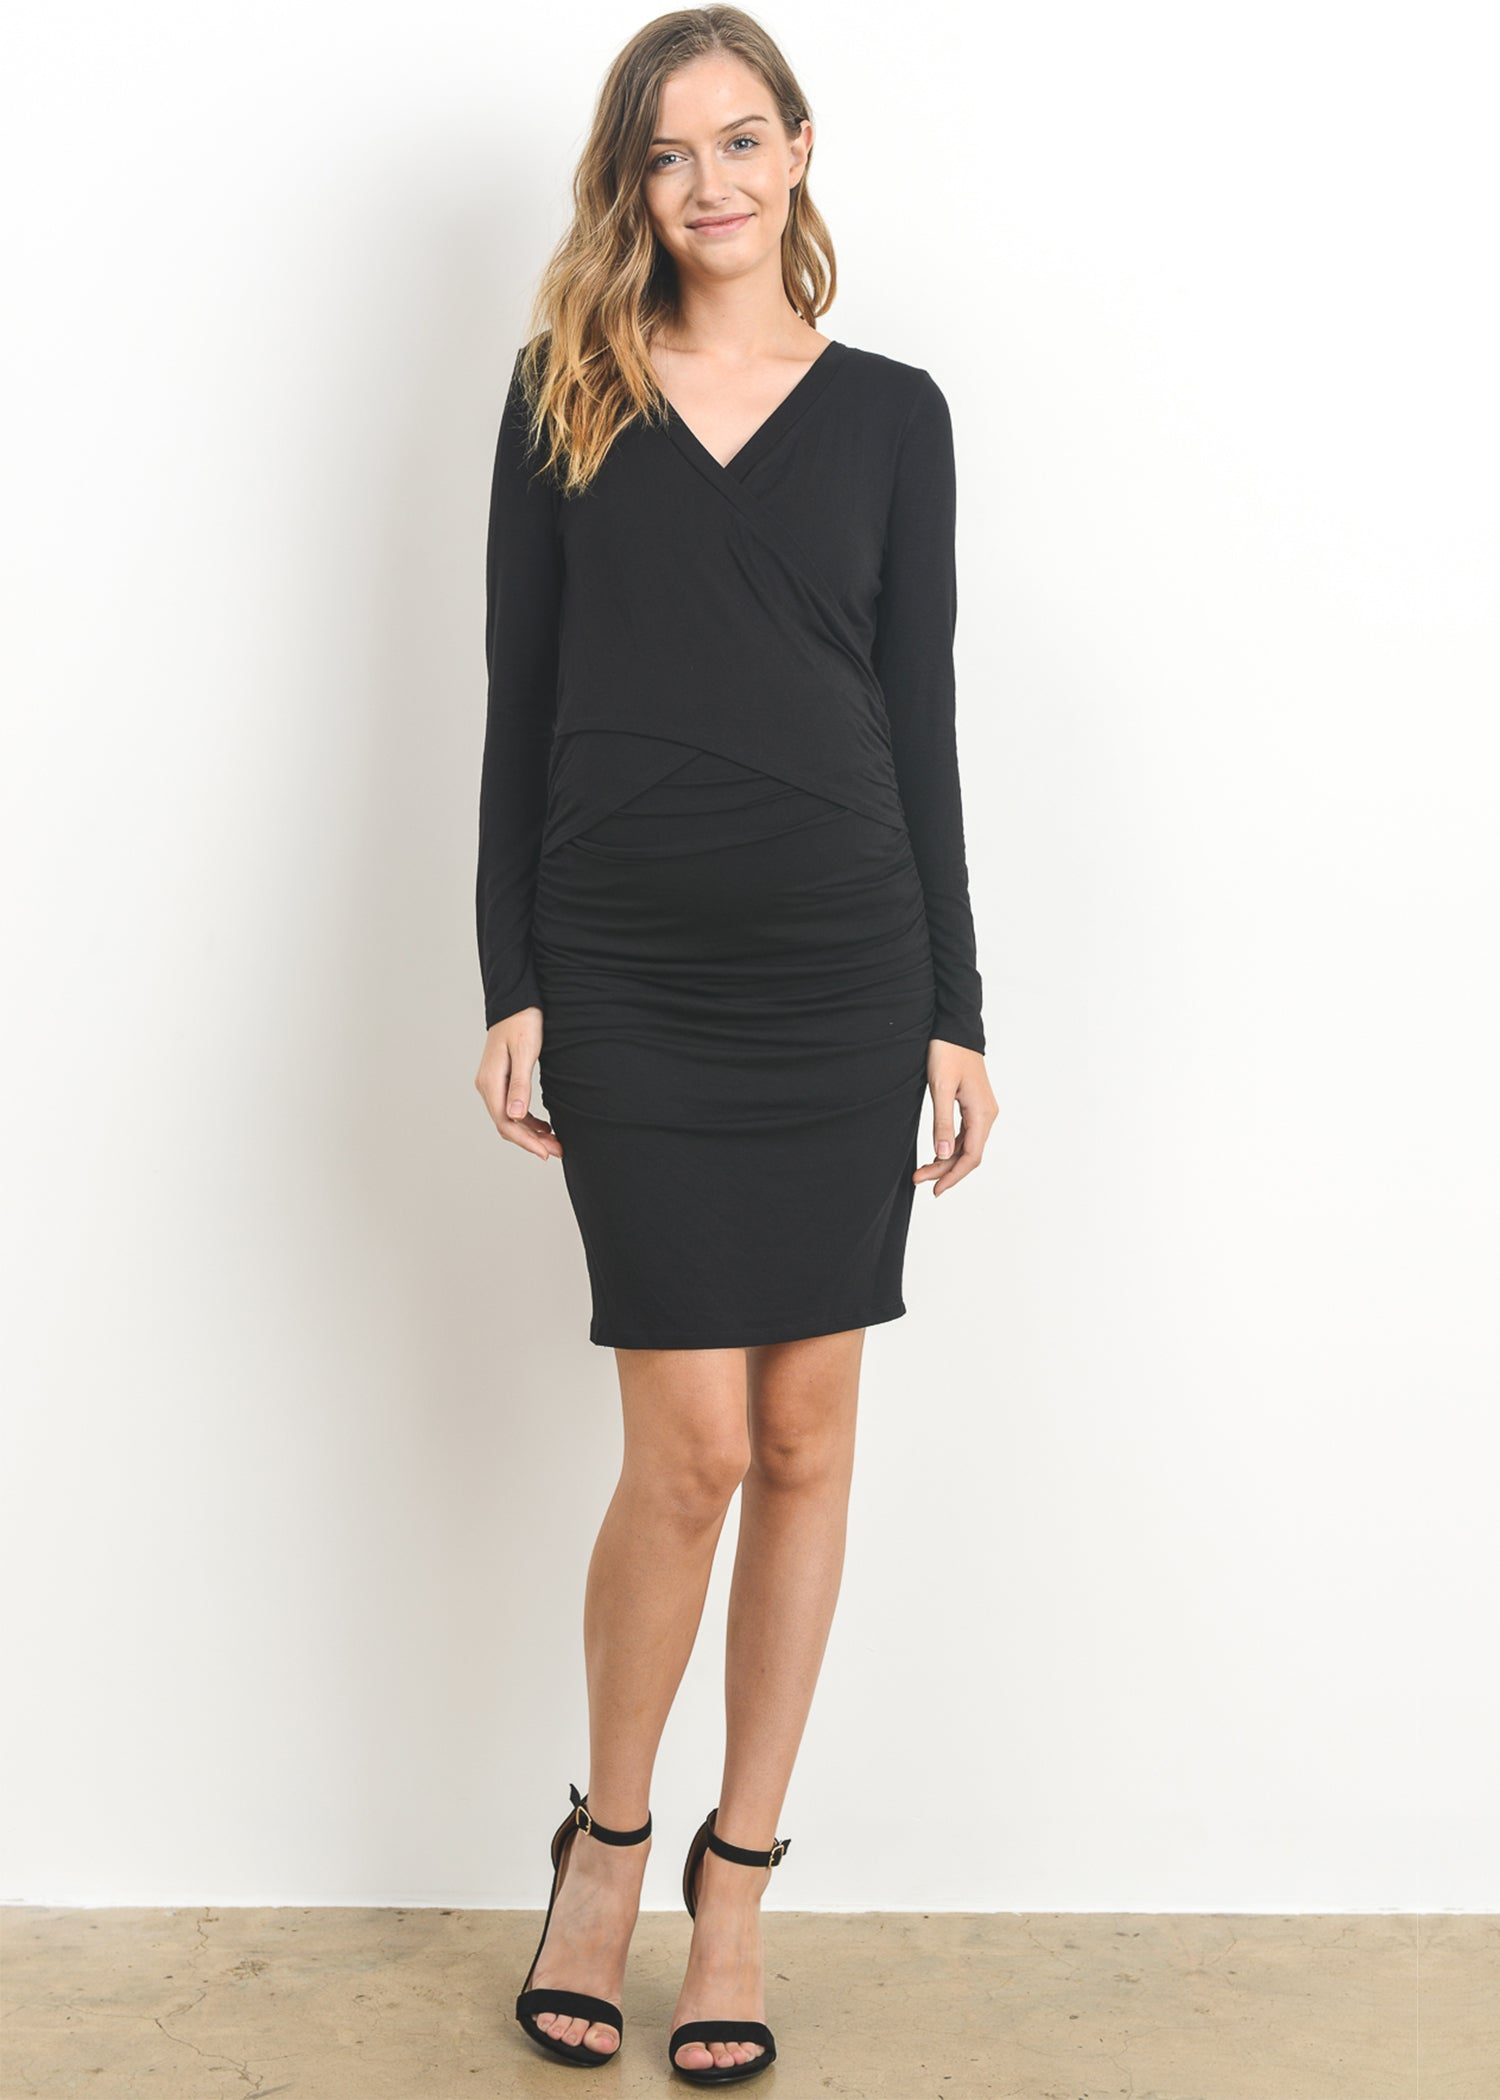 Mod collective by modish maternity anya long sleeve dress modish anya dress in black ombrellifo Image collections